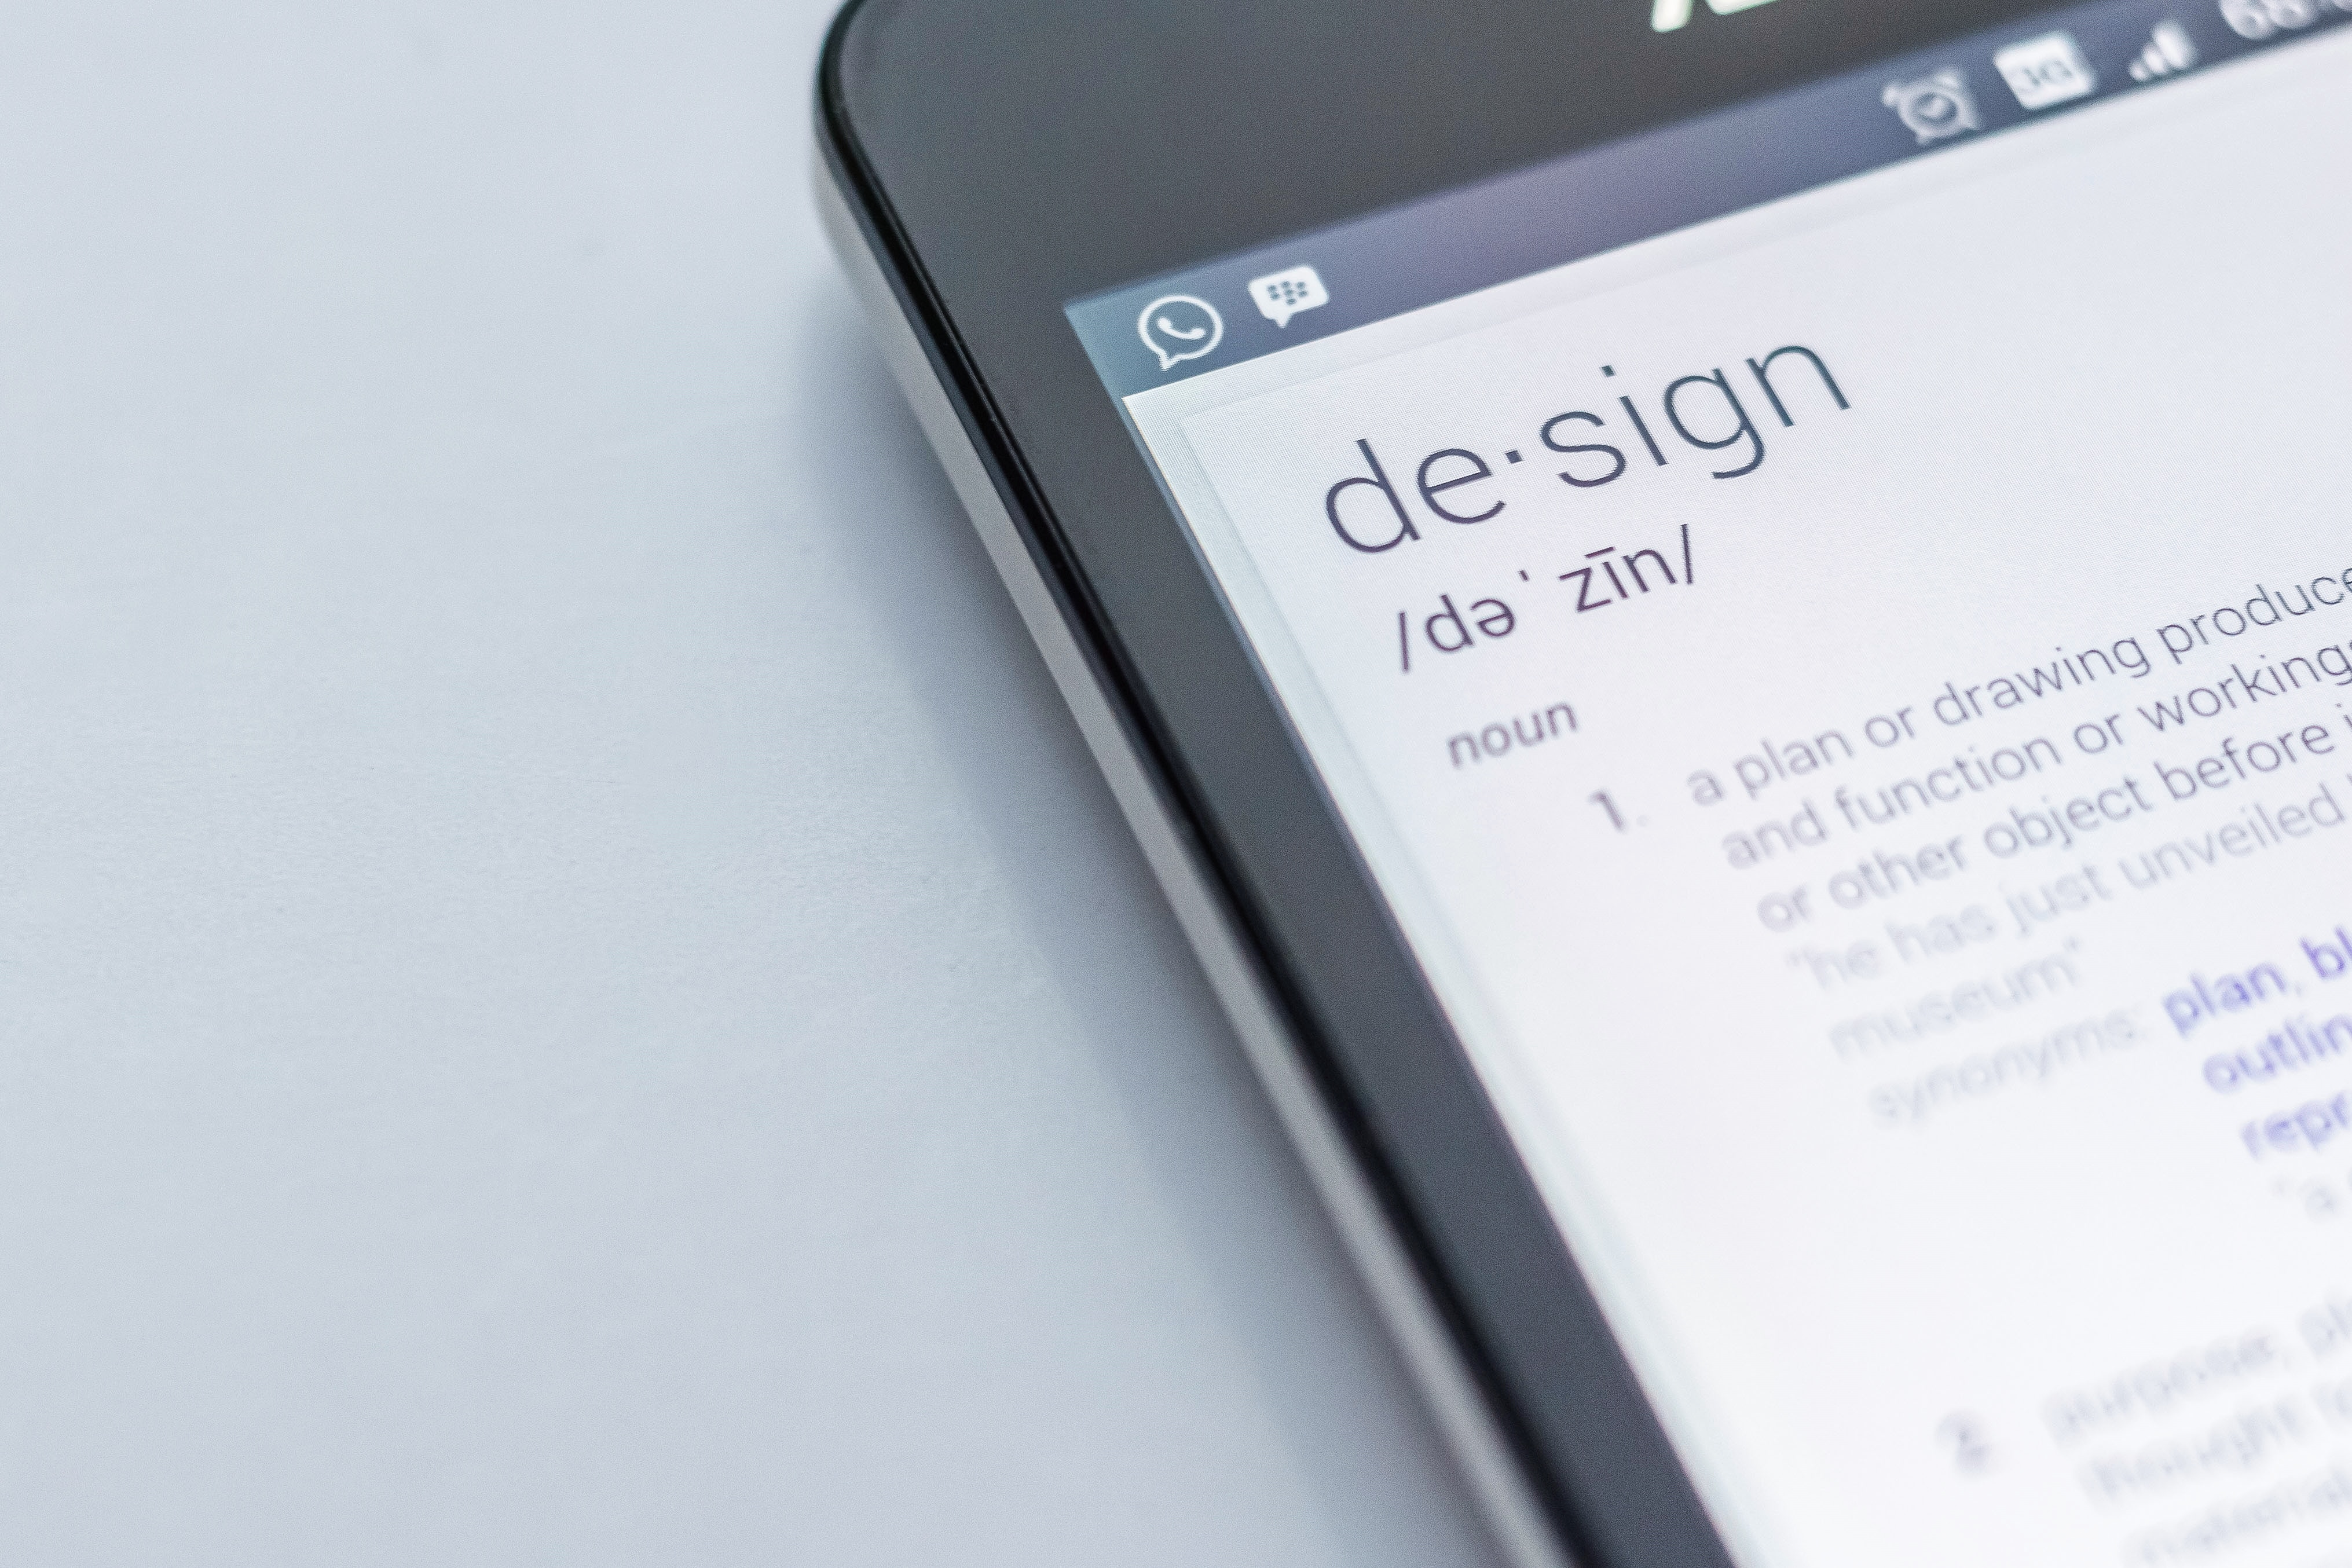 Close-up partial view of an iPhone with the dictionary definition of design on the screen